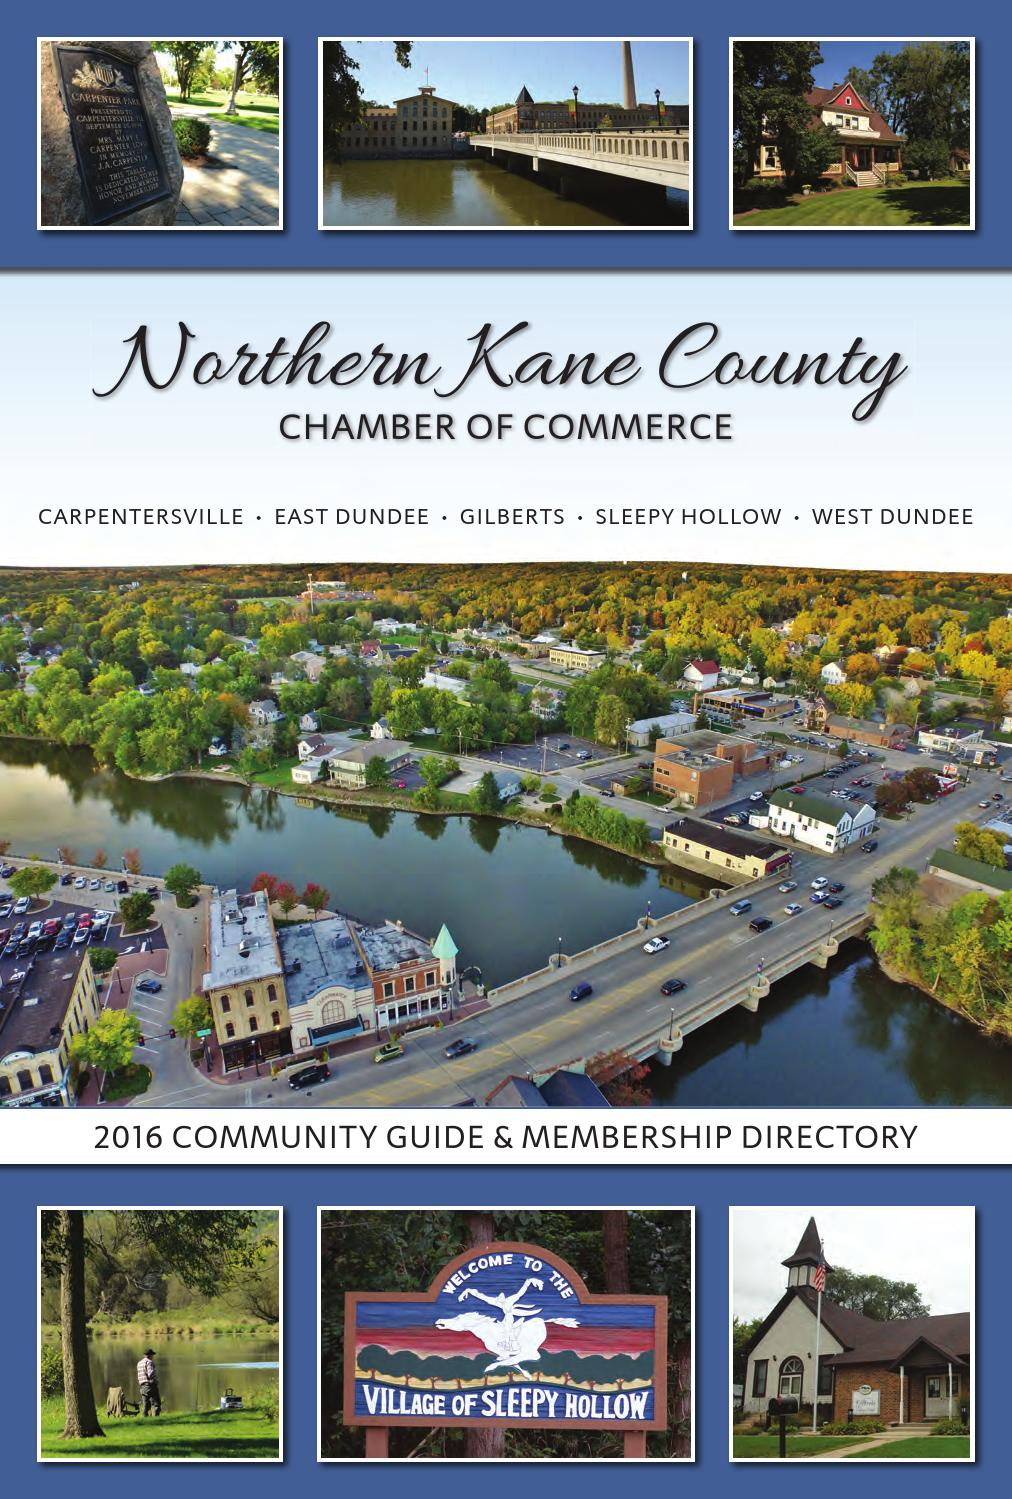 Illinois kane county carpentersville - Northern Kane County Il Chamber Profile By Town Square Publications Llc Issuu